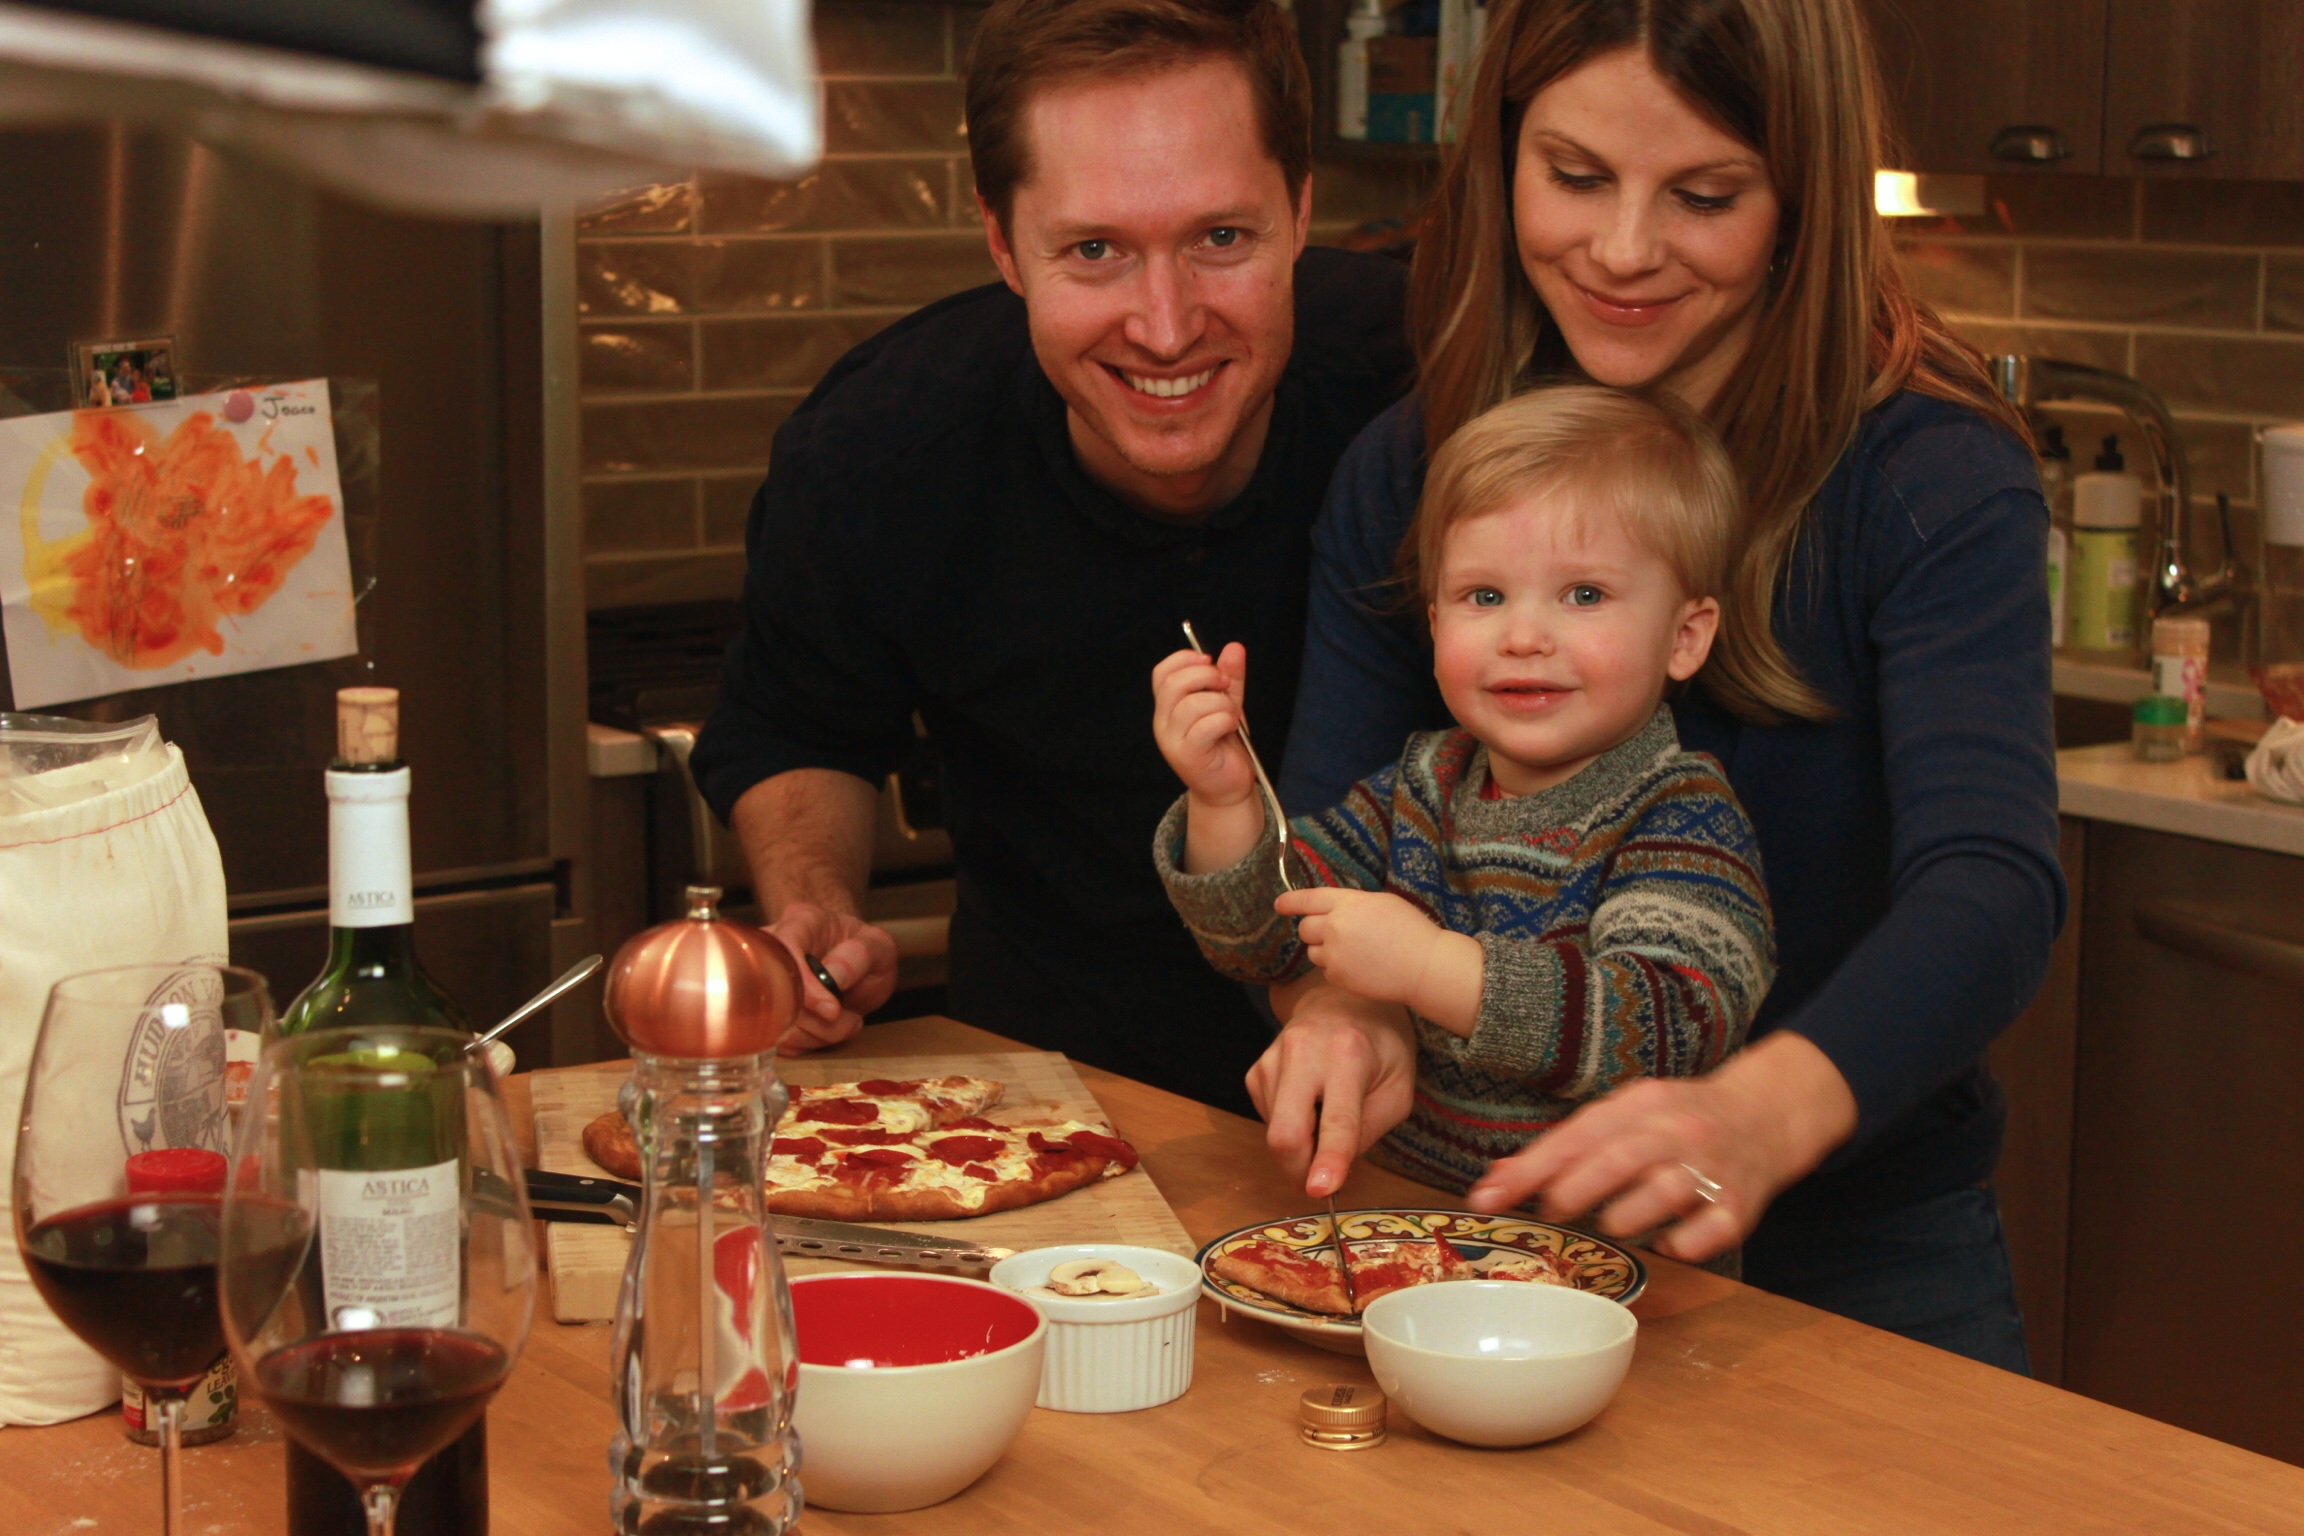 Pizza_family pic